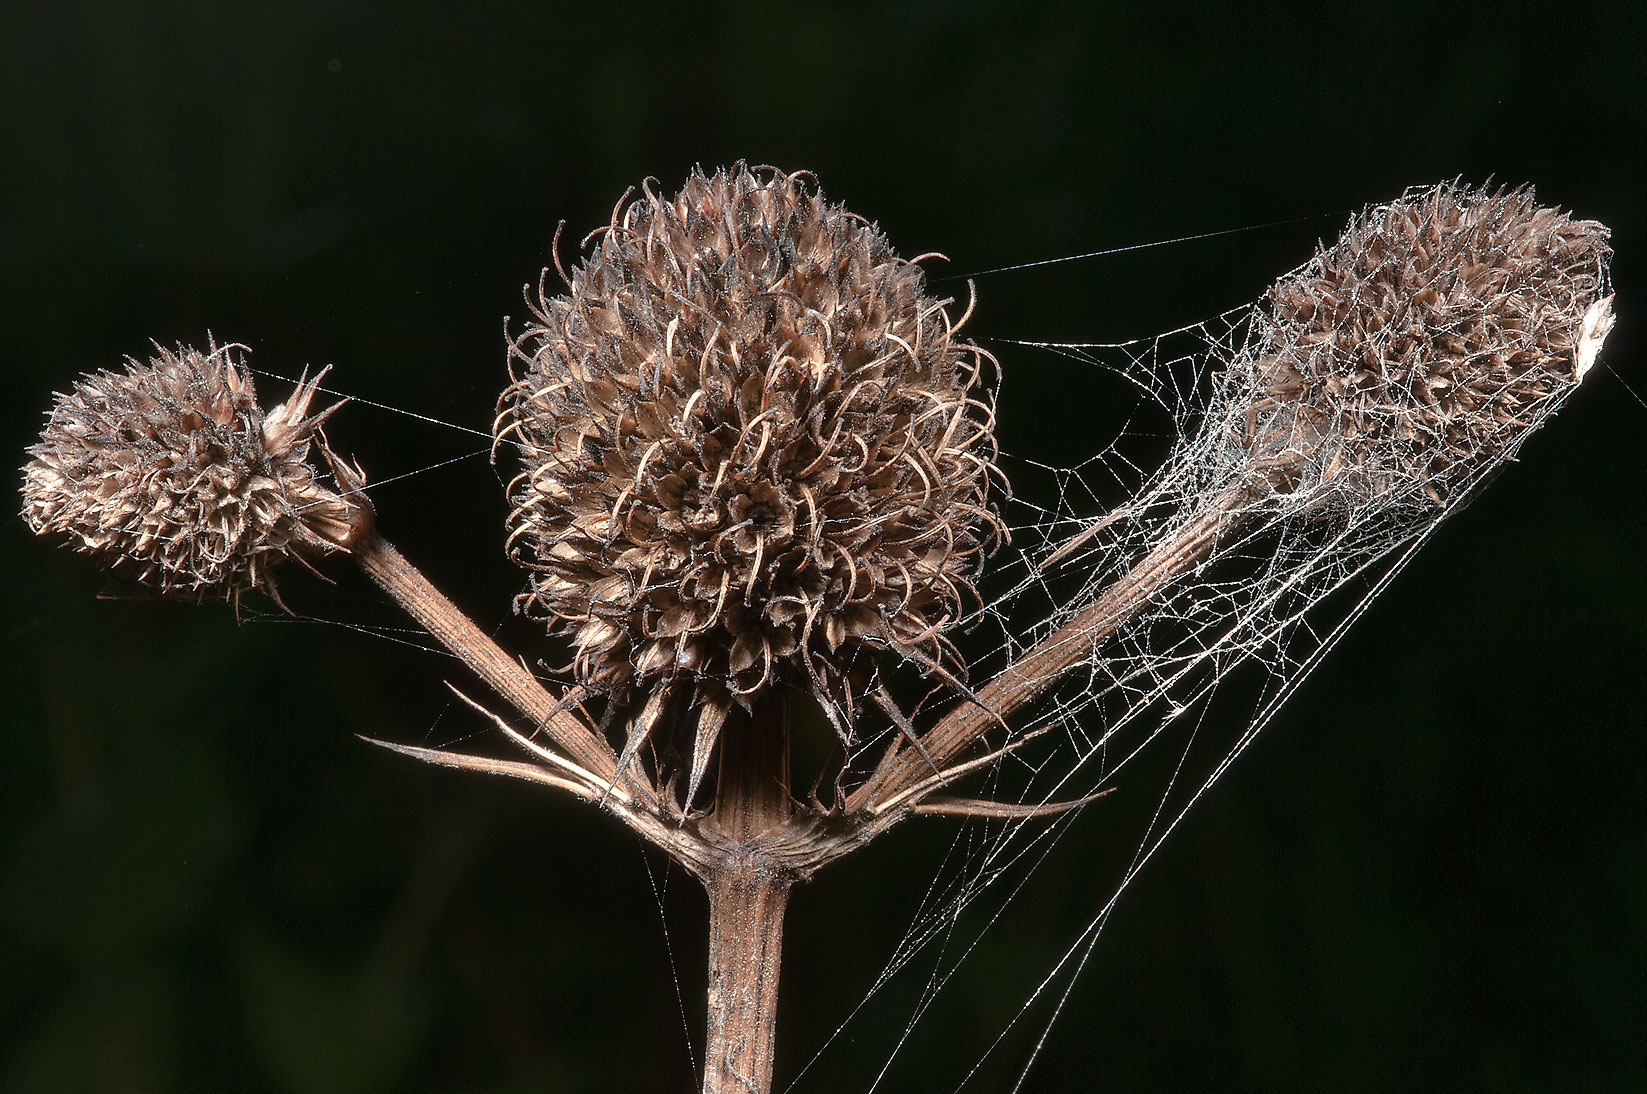 Dry seed heads of Button snakeroot (yuccaleaf...Creek Park. College Station, Texas